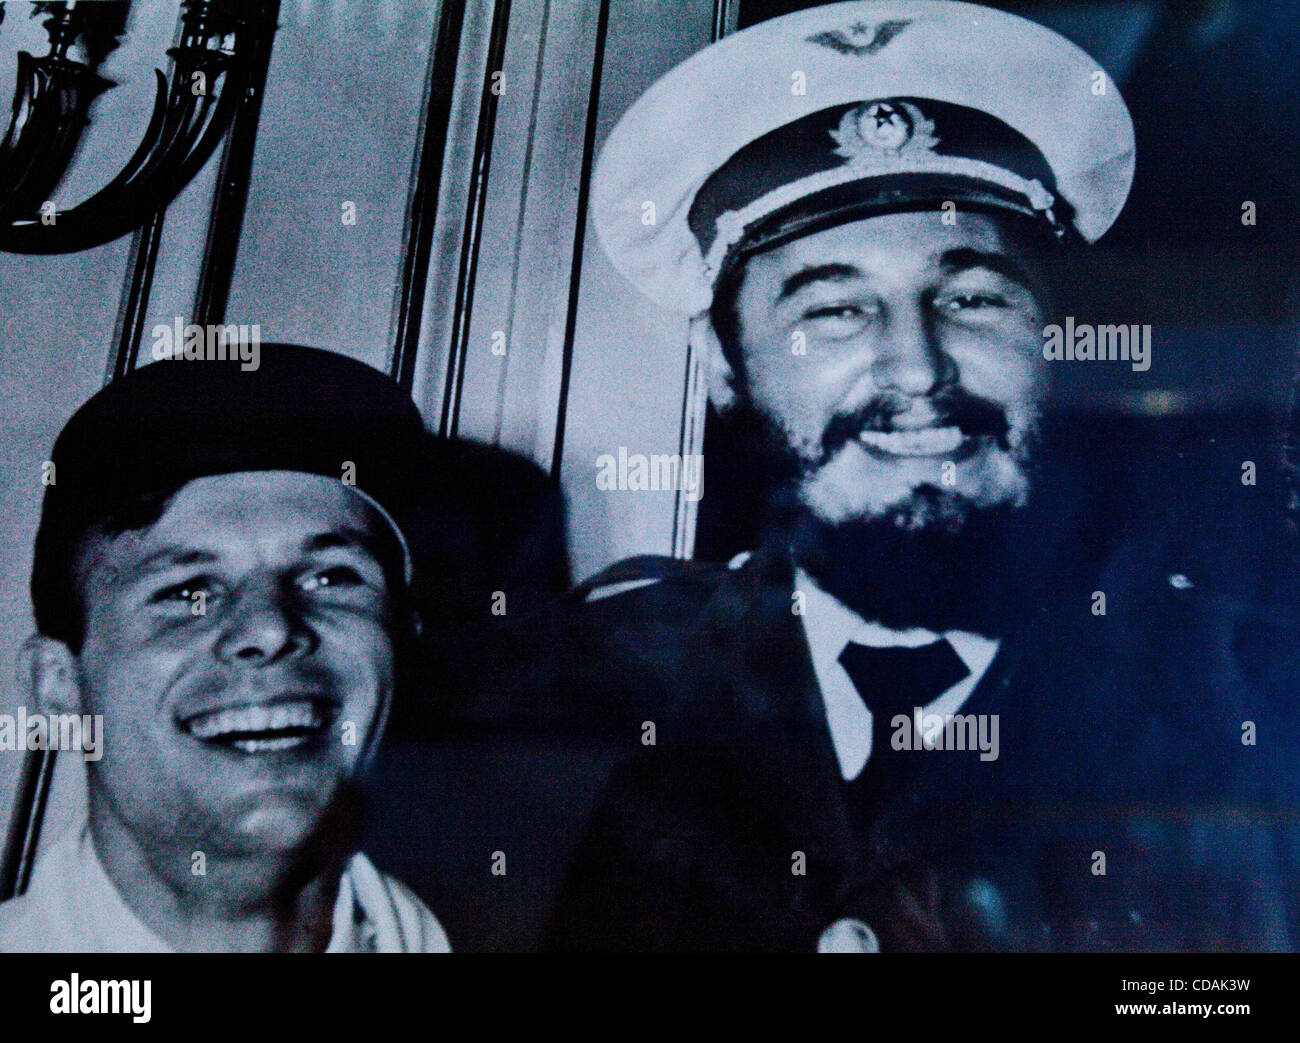 Sep 03, 2010 - Baikonur, Kazakhstan - Photo of YURI GAGARIN and FIDEL CASTRO. Gagarin visited Cuba after his victorious - Stock Image